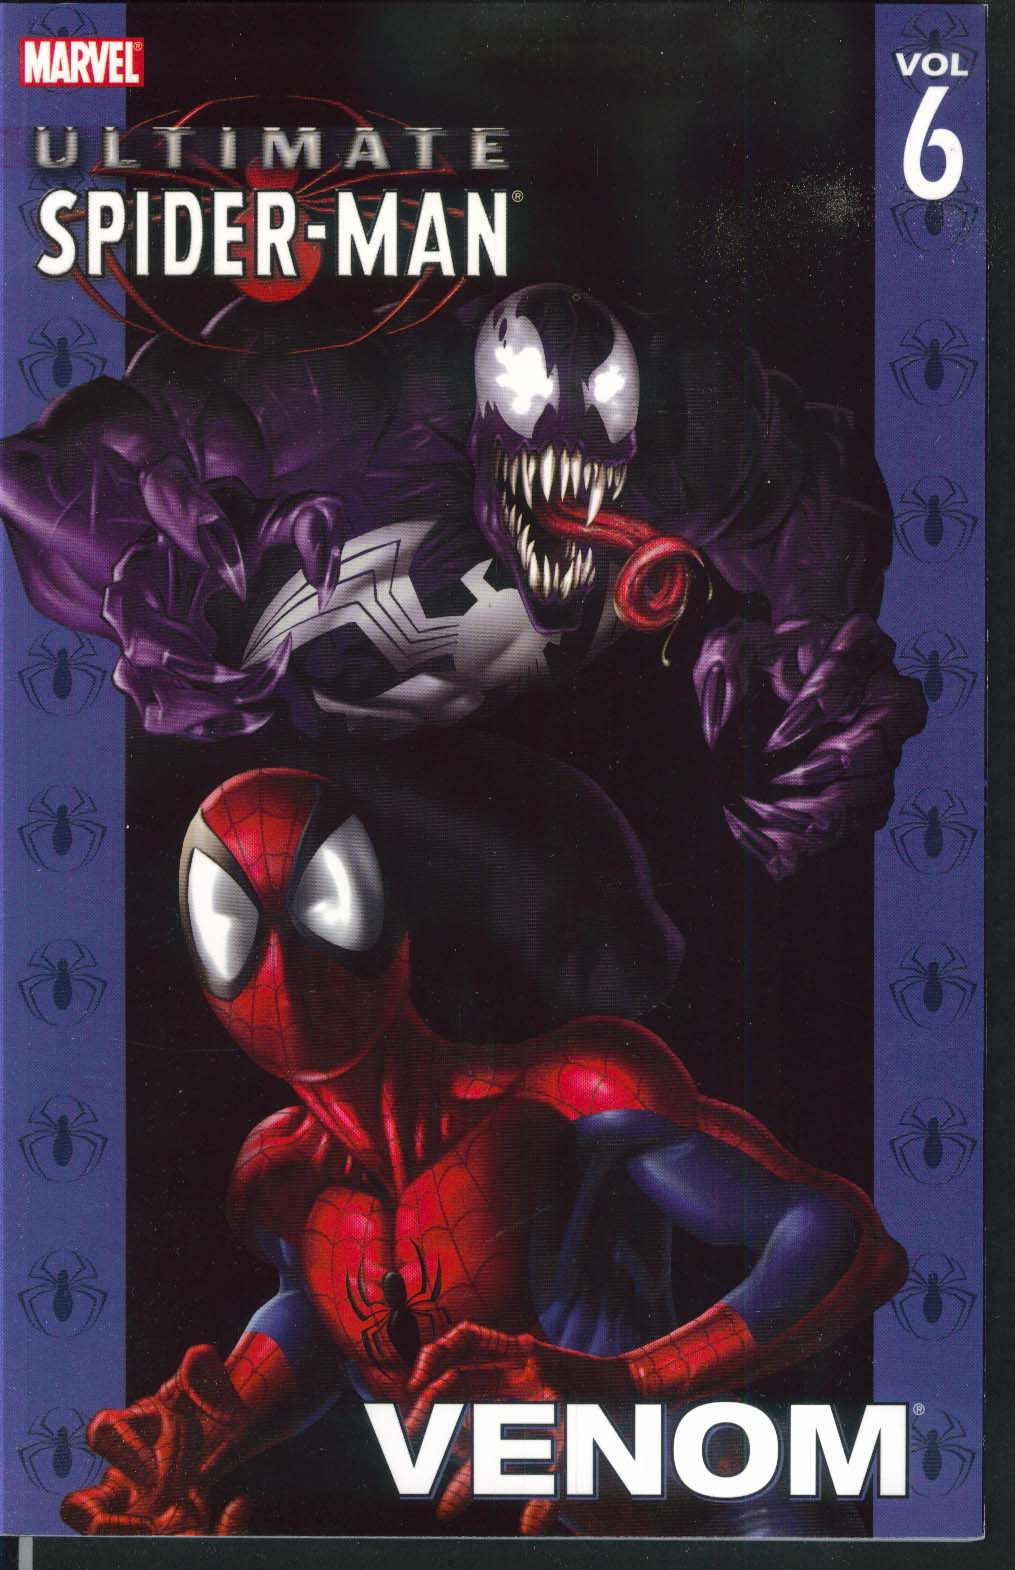 ULTIMATE SPIDER-MAN Vol 6 Venom Marvel Graphic Novel 4th Printing 2005